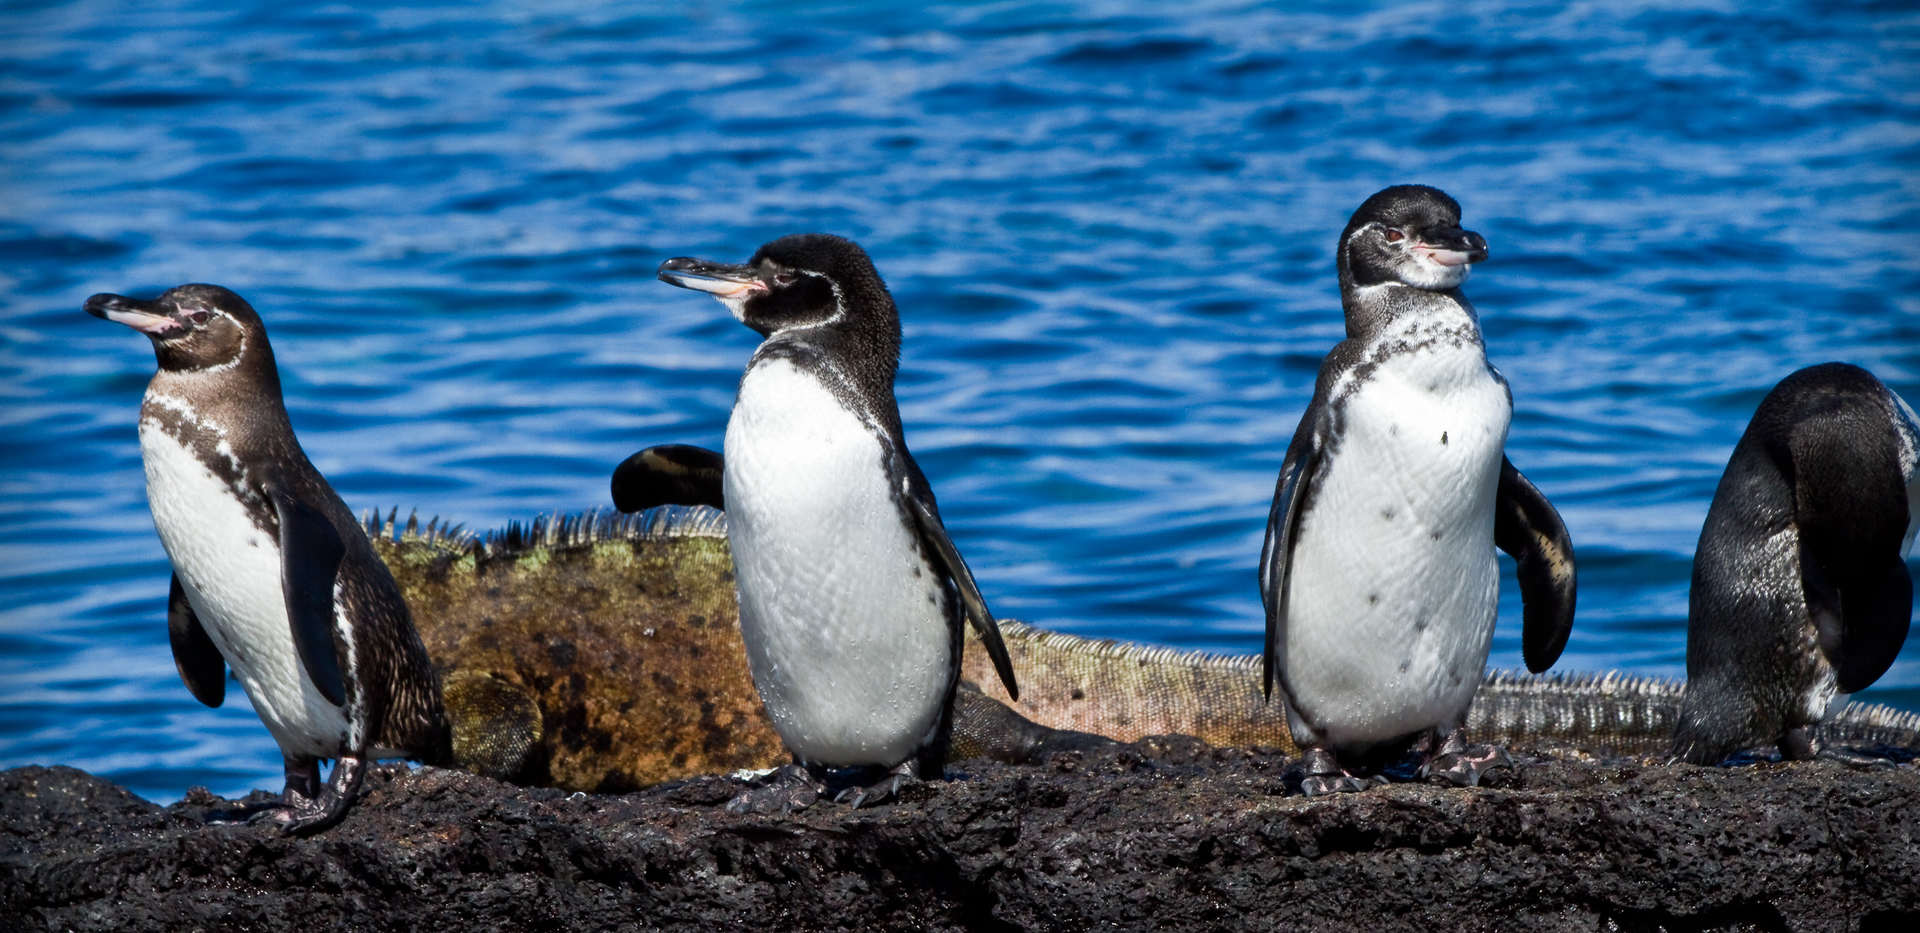 penguins-enjoy-nice-photo-galapagos-ecua